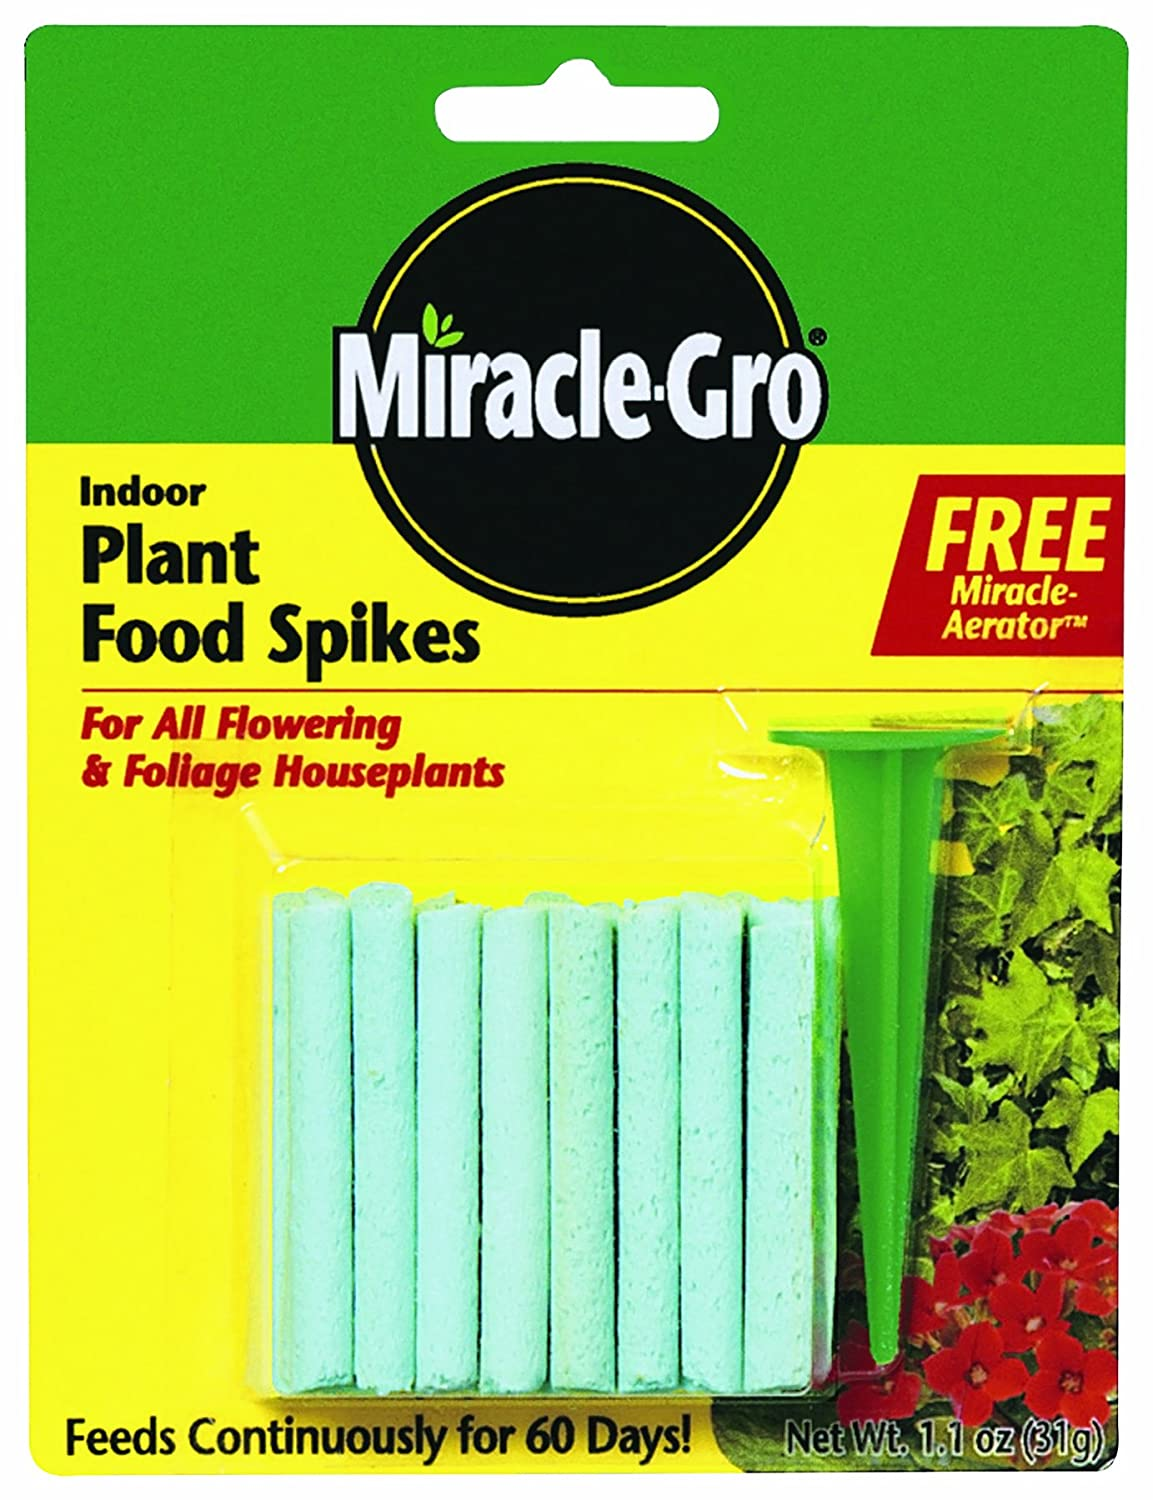 Miracle Gro Indoor Plant Food Spikes Image 1